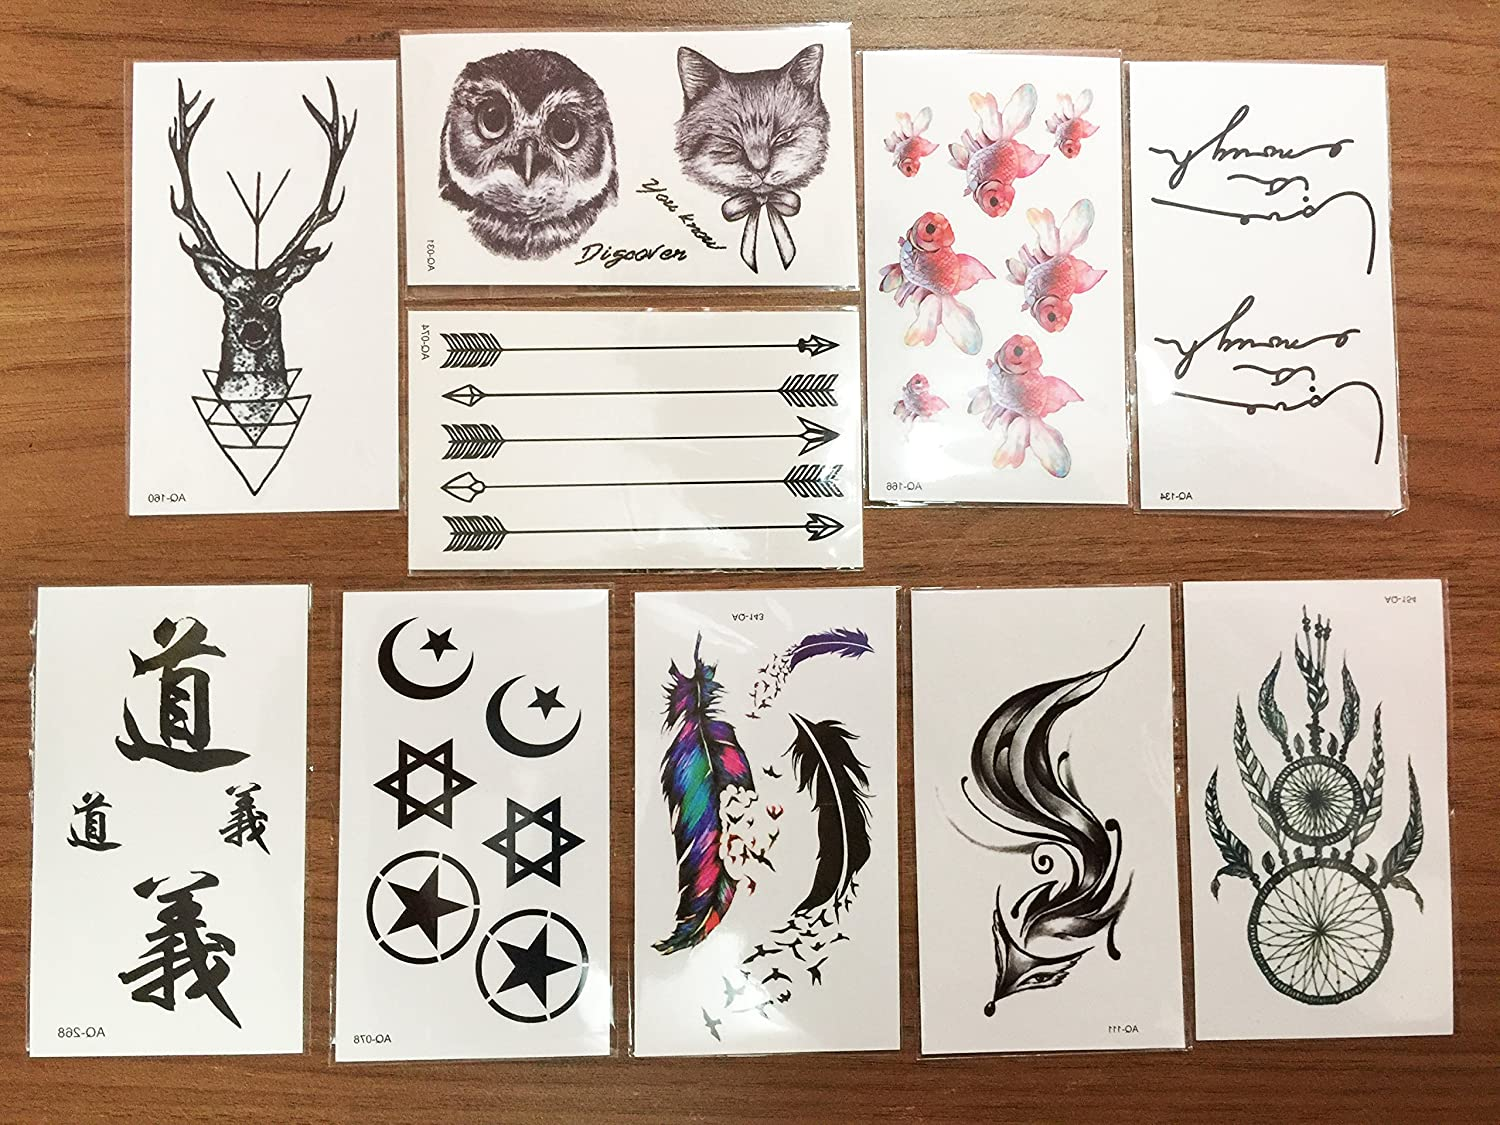 10 Sheets of Temporary Tattoo Stickers Removable Tattoo Waterproof 2018 Newest Designs Last 7 10 Days